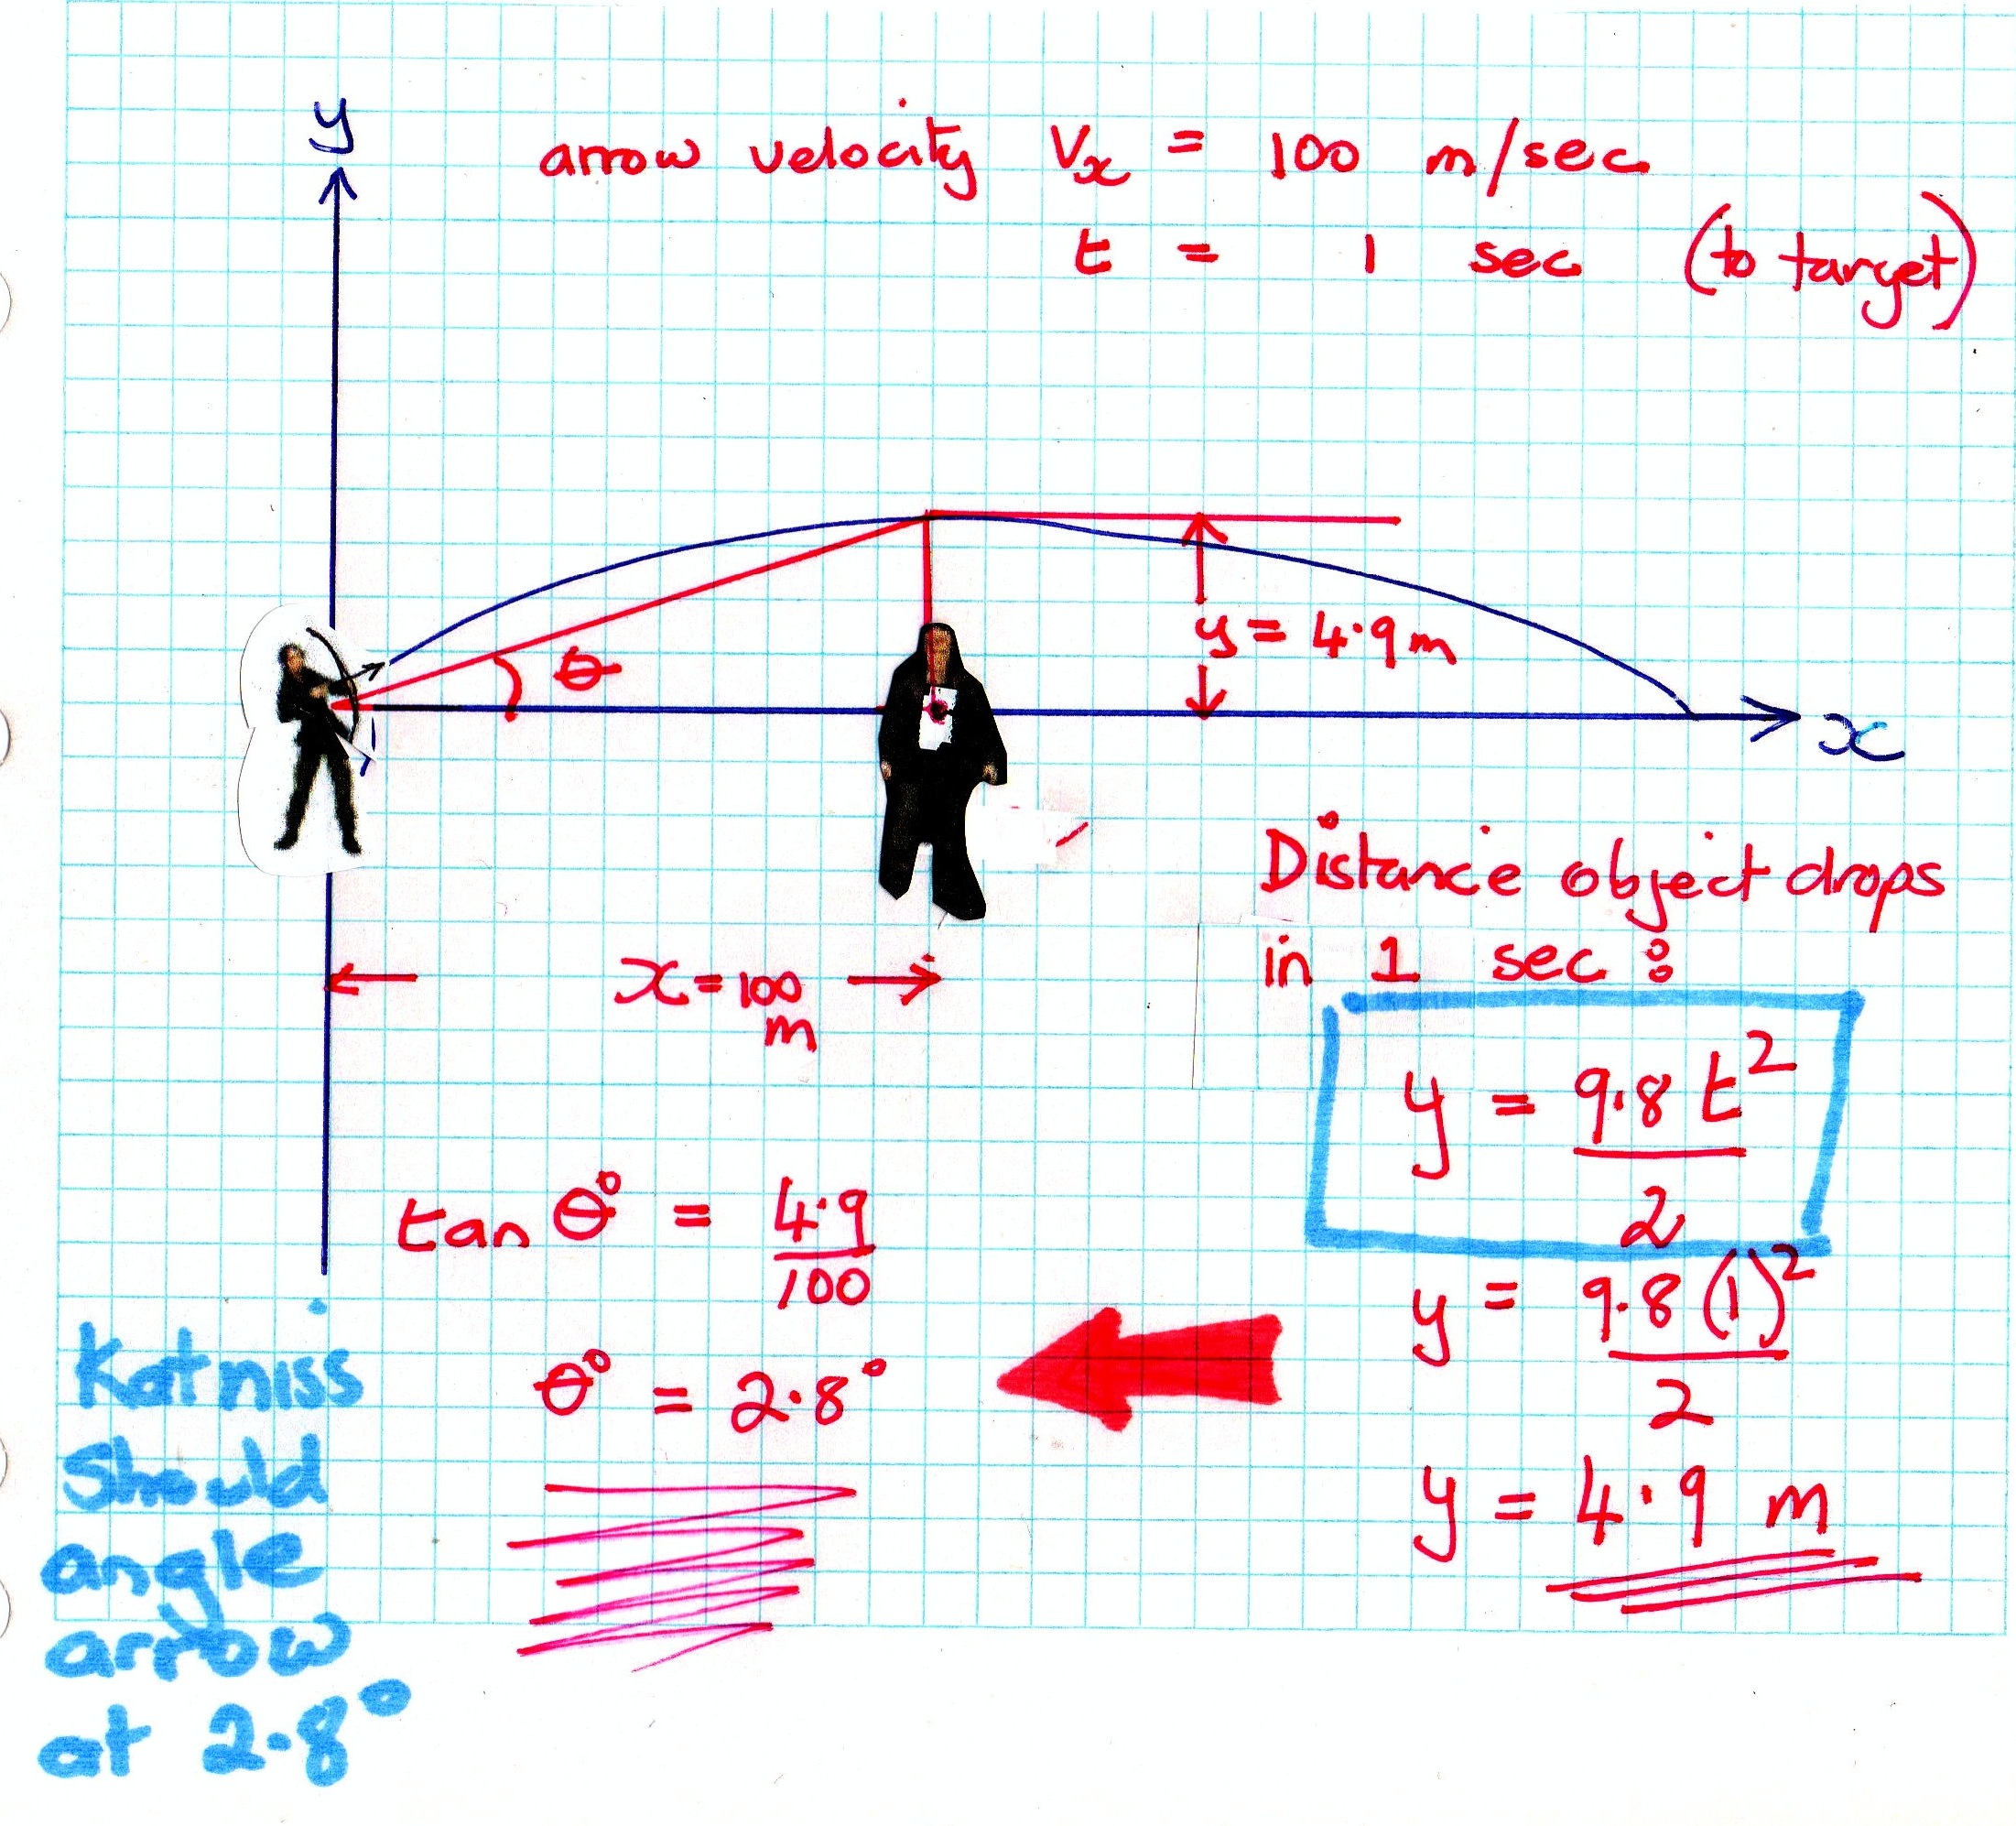 Grade Integers Worksheets With Fresh Subtracting Fun Math Integer Worksheet Beautiful Multiplication Free Printable Adding in addition Eqn as well Graph Paper Coloring Pages Master Coloring Pages Fun Graphing Worksheets Pdf together with Valentines Worksheets For Kindergarten Letter Assessment Grade Fractions Number Line Day Math First And Second Woo Va in addition Bunch Ideas Of Life Skills Math Worksheets Free Menu Hamburger Hut Pr Pdf Simple Mcdonalds Thanksgiving For Beginners Middle School Taco Bell X. on best of number worksheets luxury kids addition kindergarten high